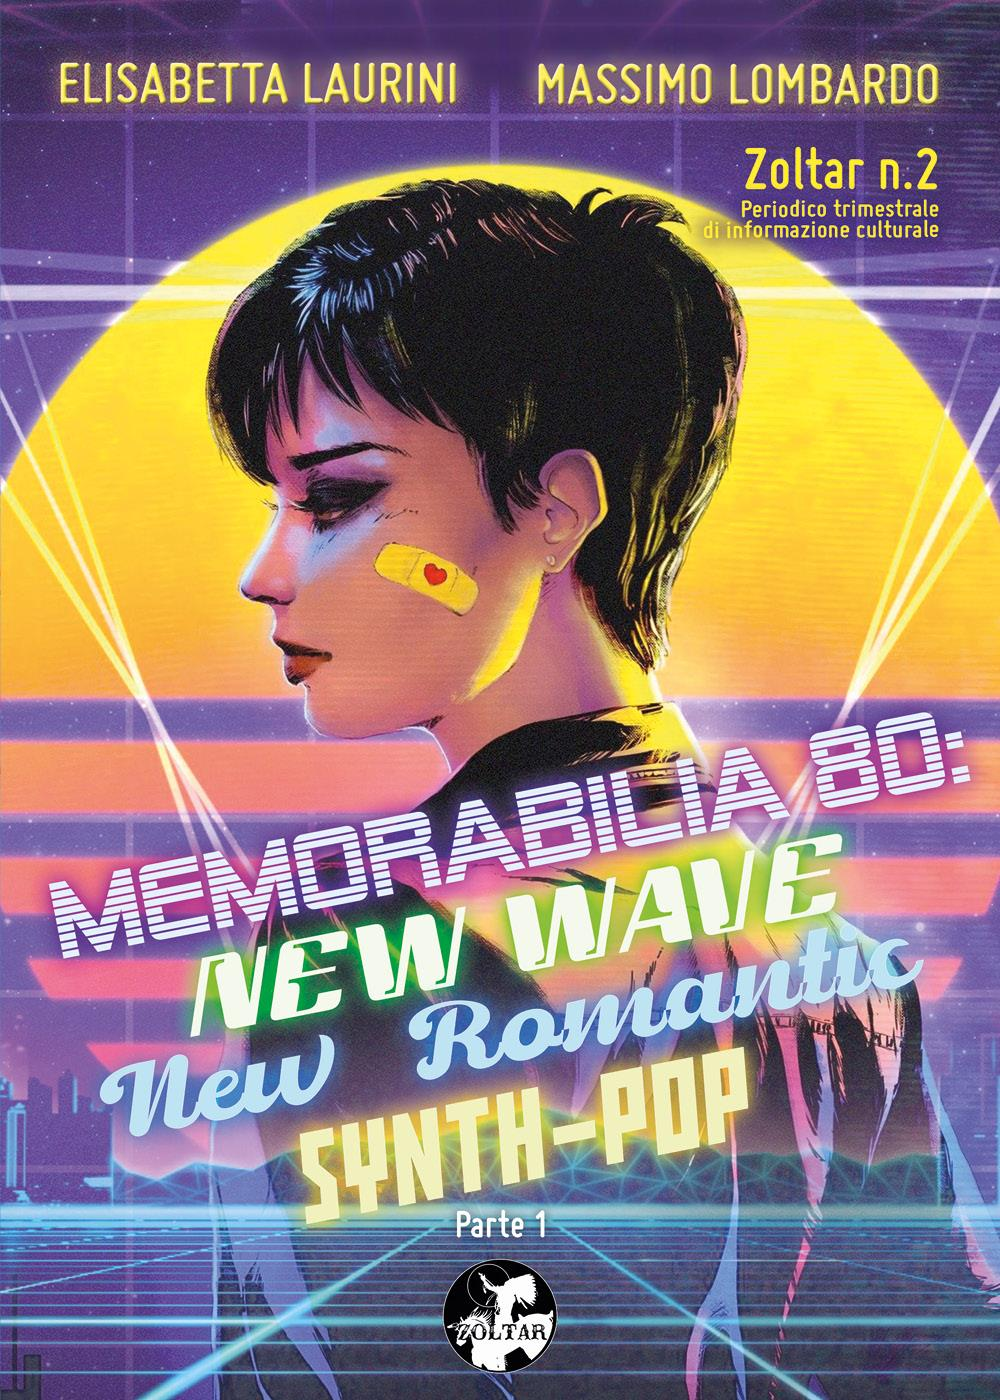 Zoltar n.2 - Memorabilia '80: New Wave, New Romantic, Synth-Pop (Parte 1)